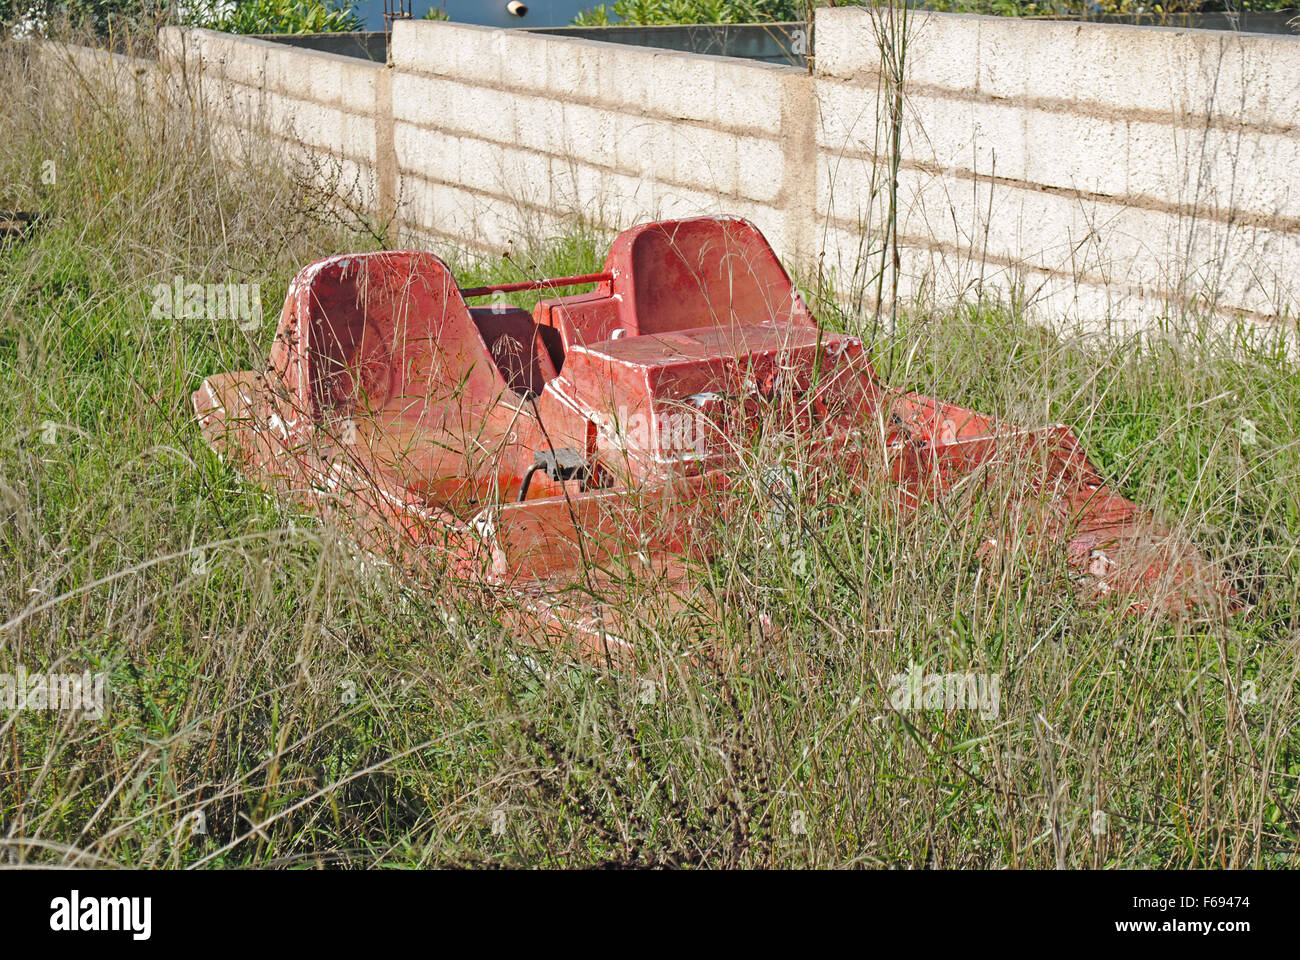 An old red pedalo seen in a neclected garden area. - Stock Image